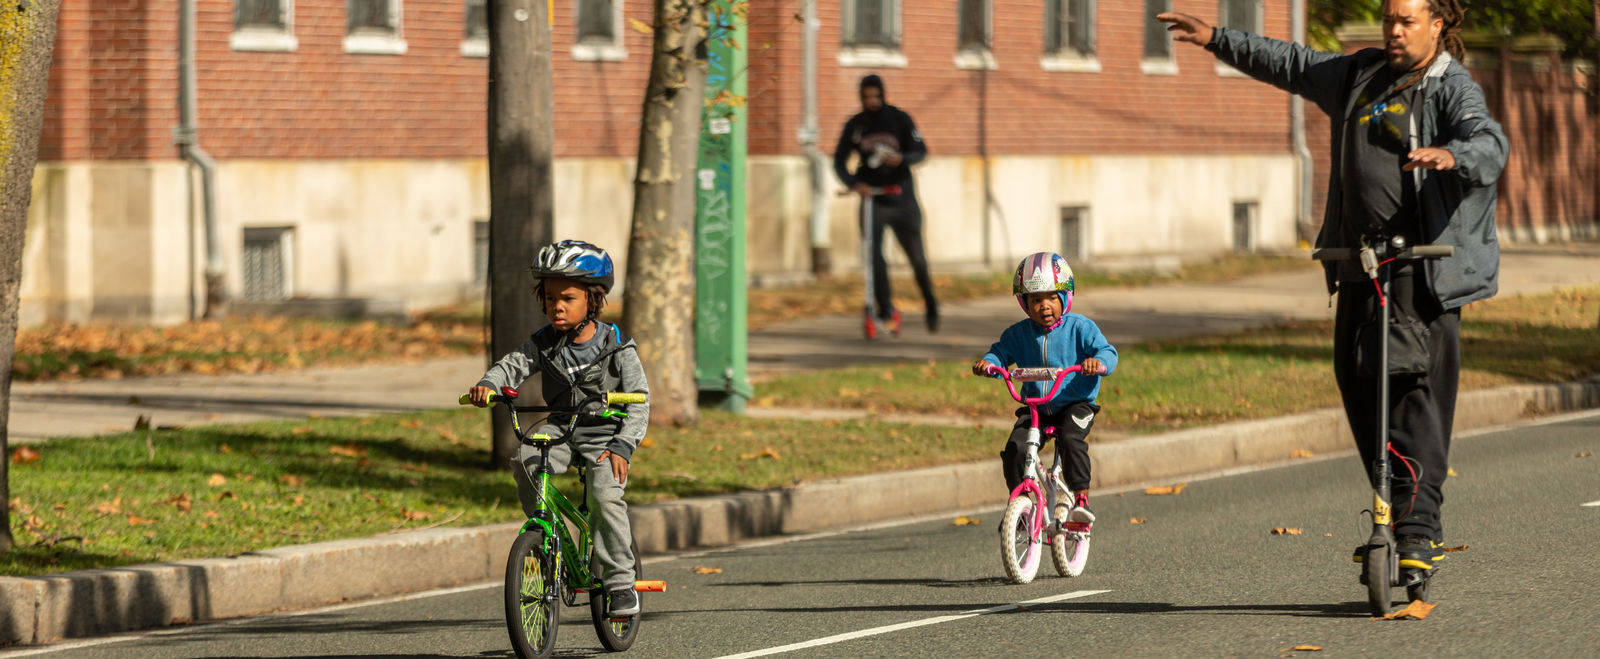 A family bikes on open streets.